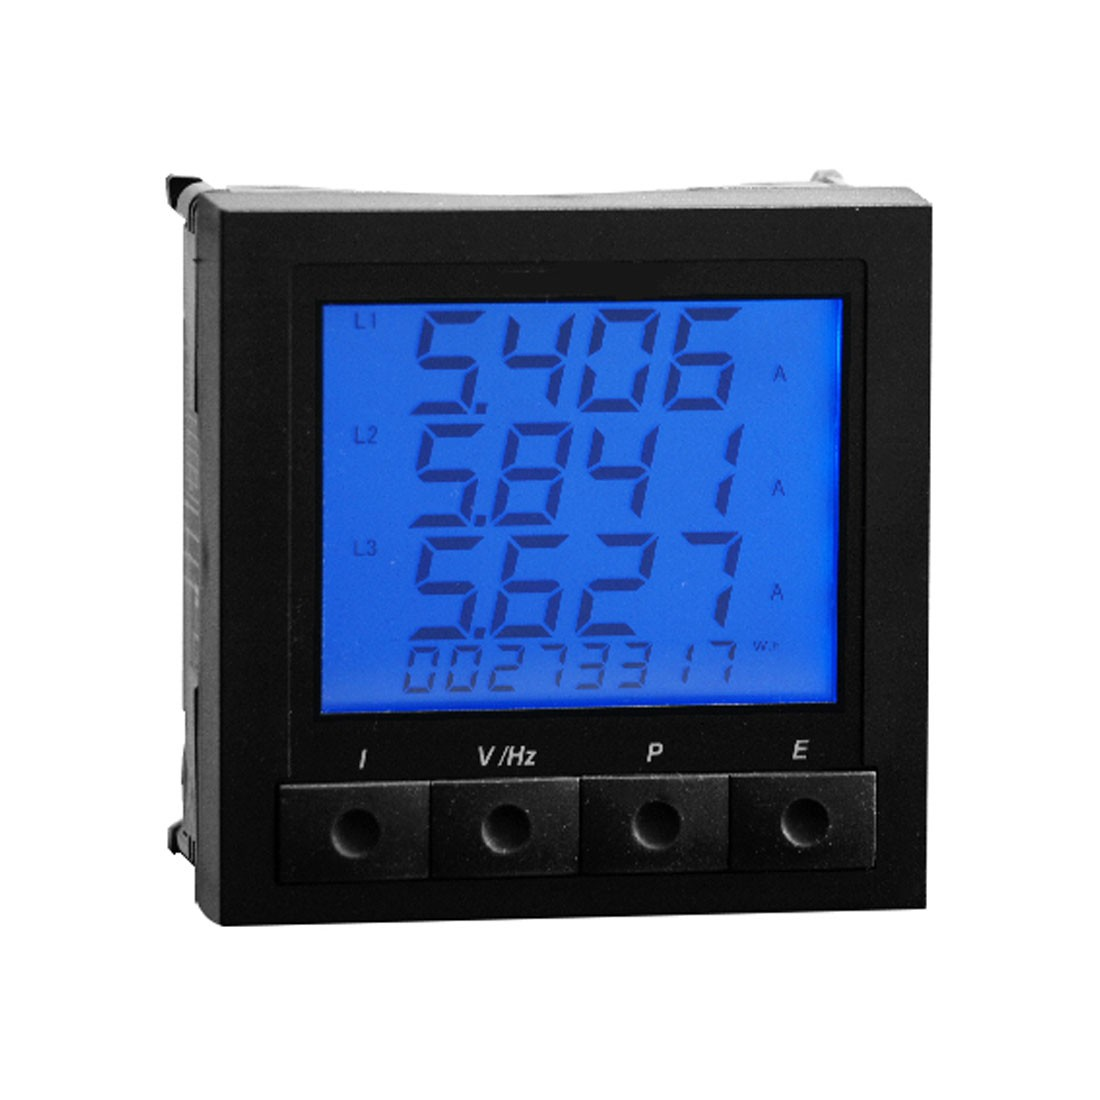 M850 Series Multitek MultiPower Multifunction AC or DC Digital Power Meter